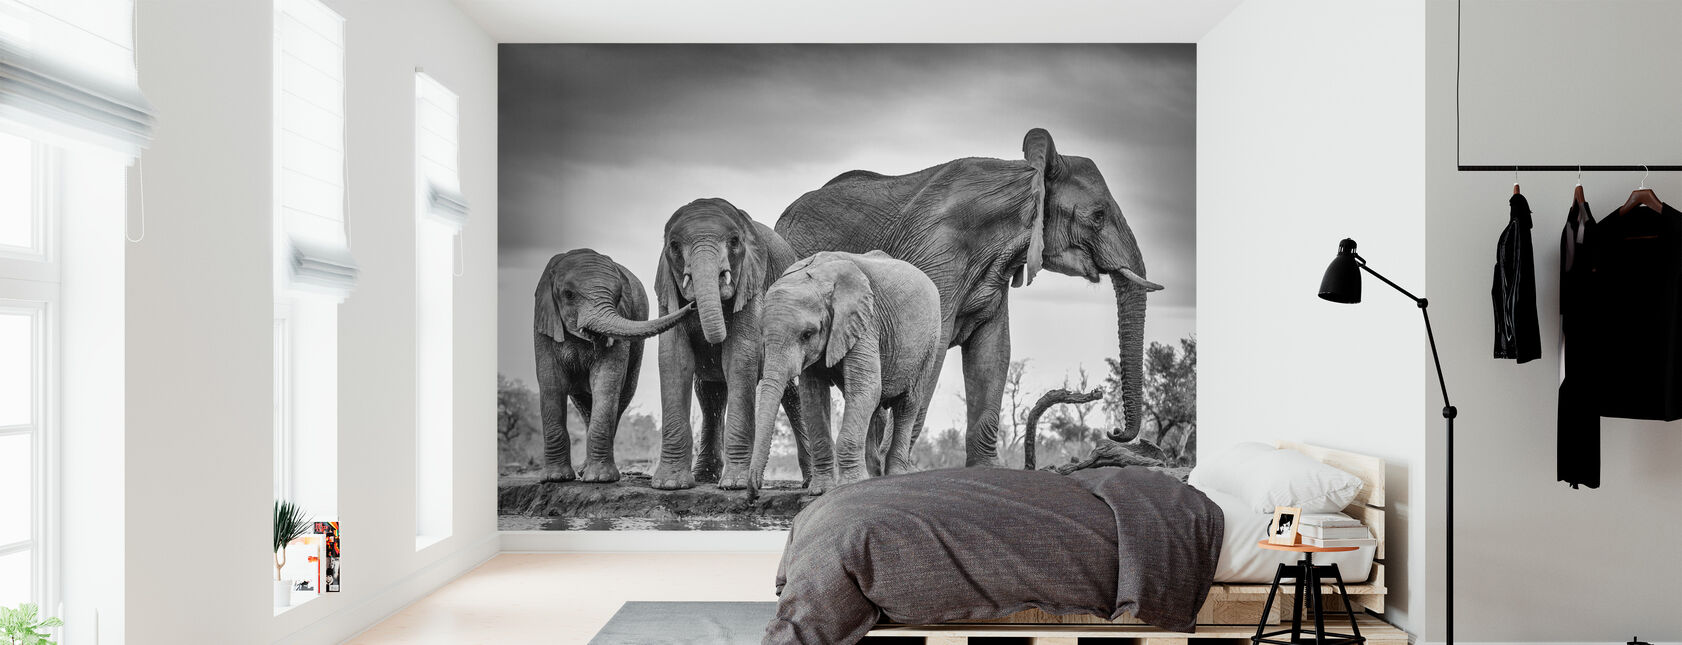 A Giant Unity, black and white - Wallpaper - Bedroom